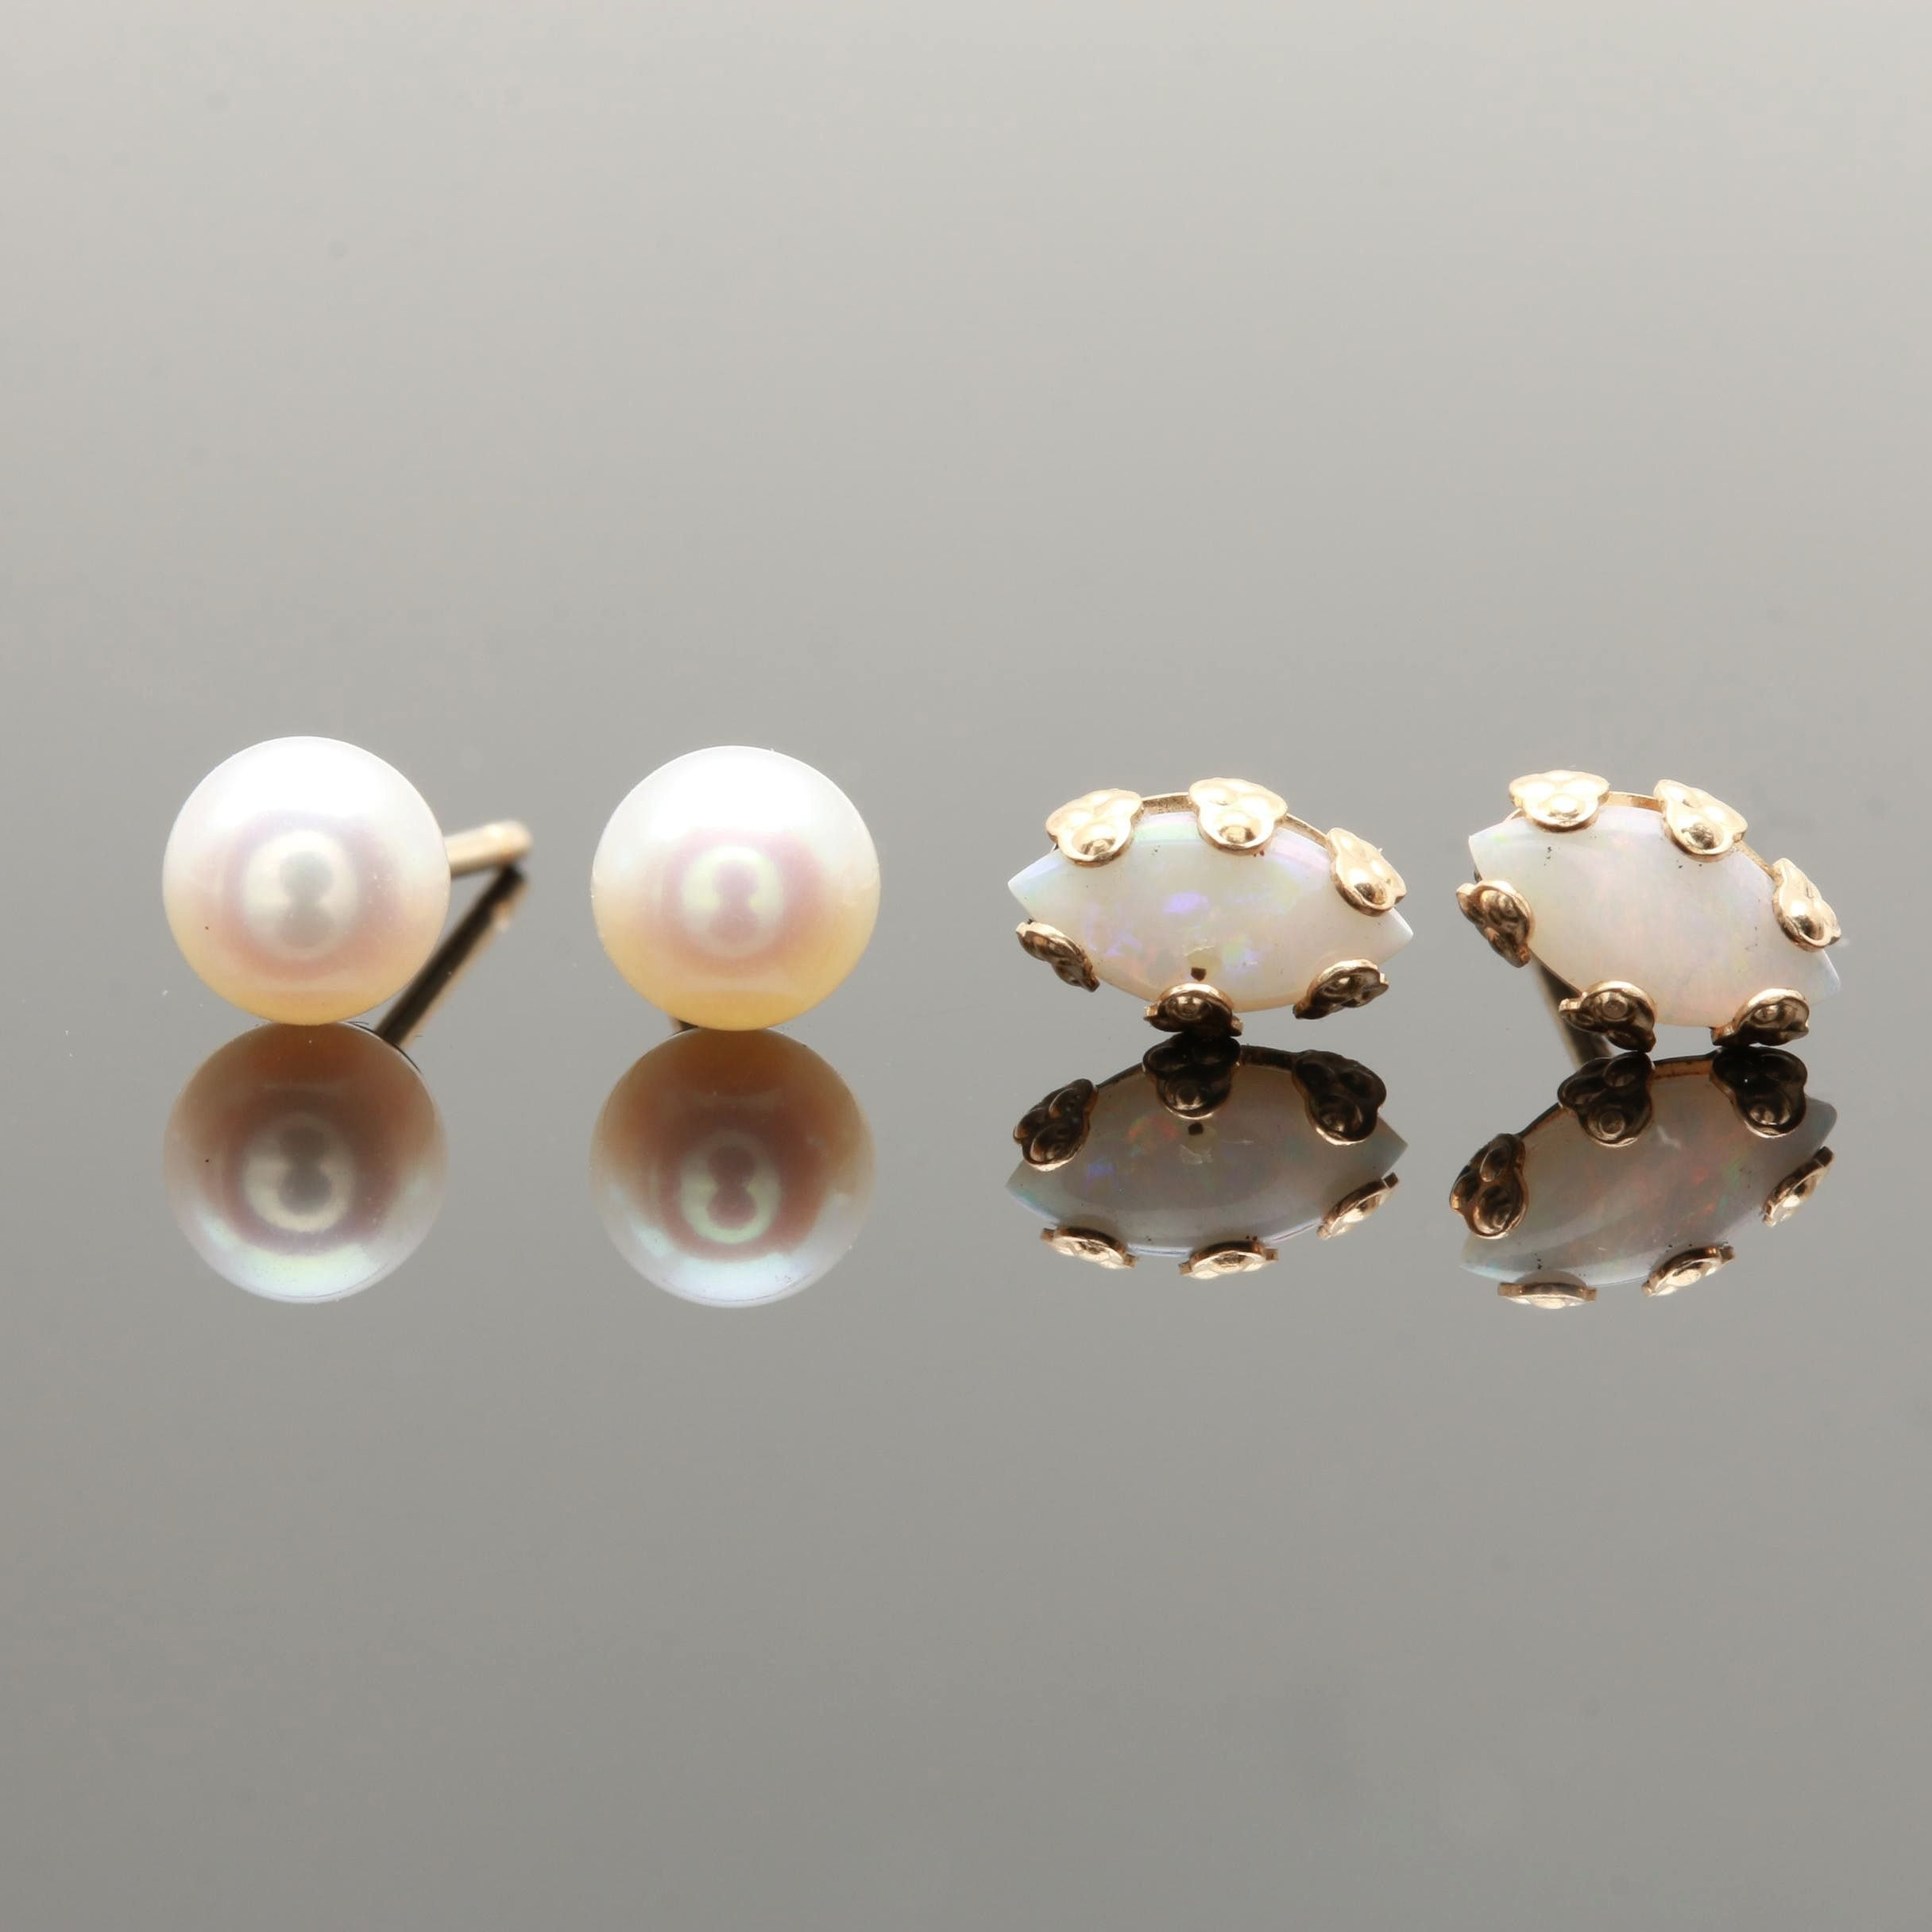 14K Yellow Gold Cultured Pearl and Opal Earrings